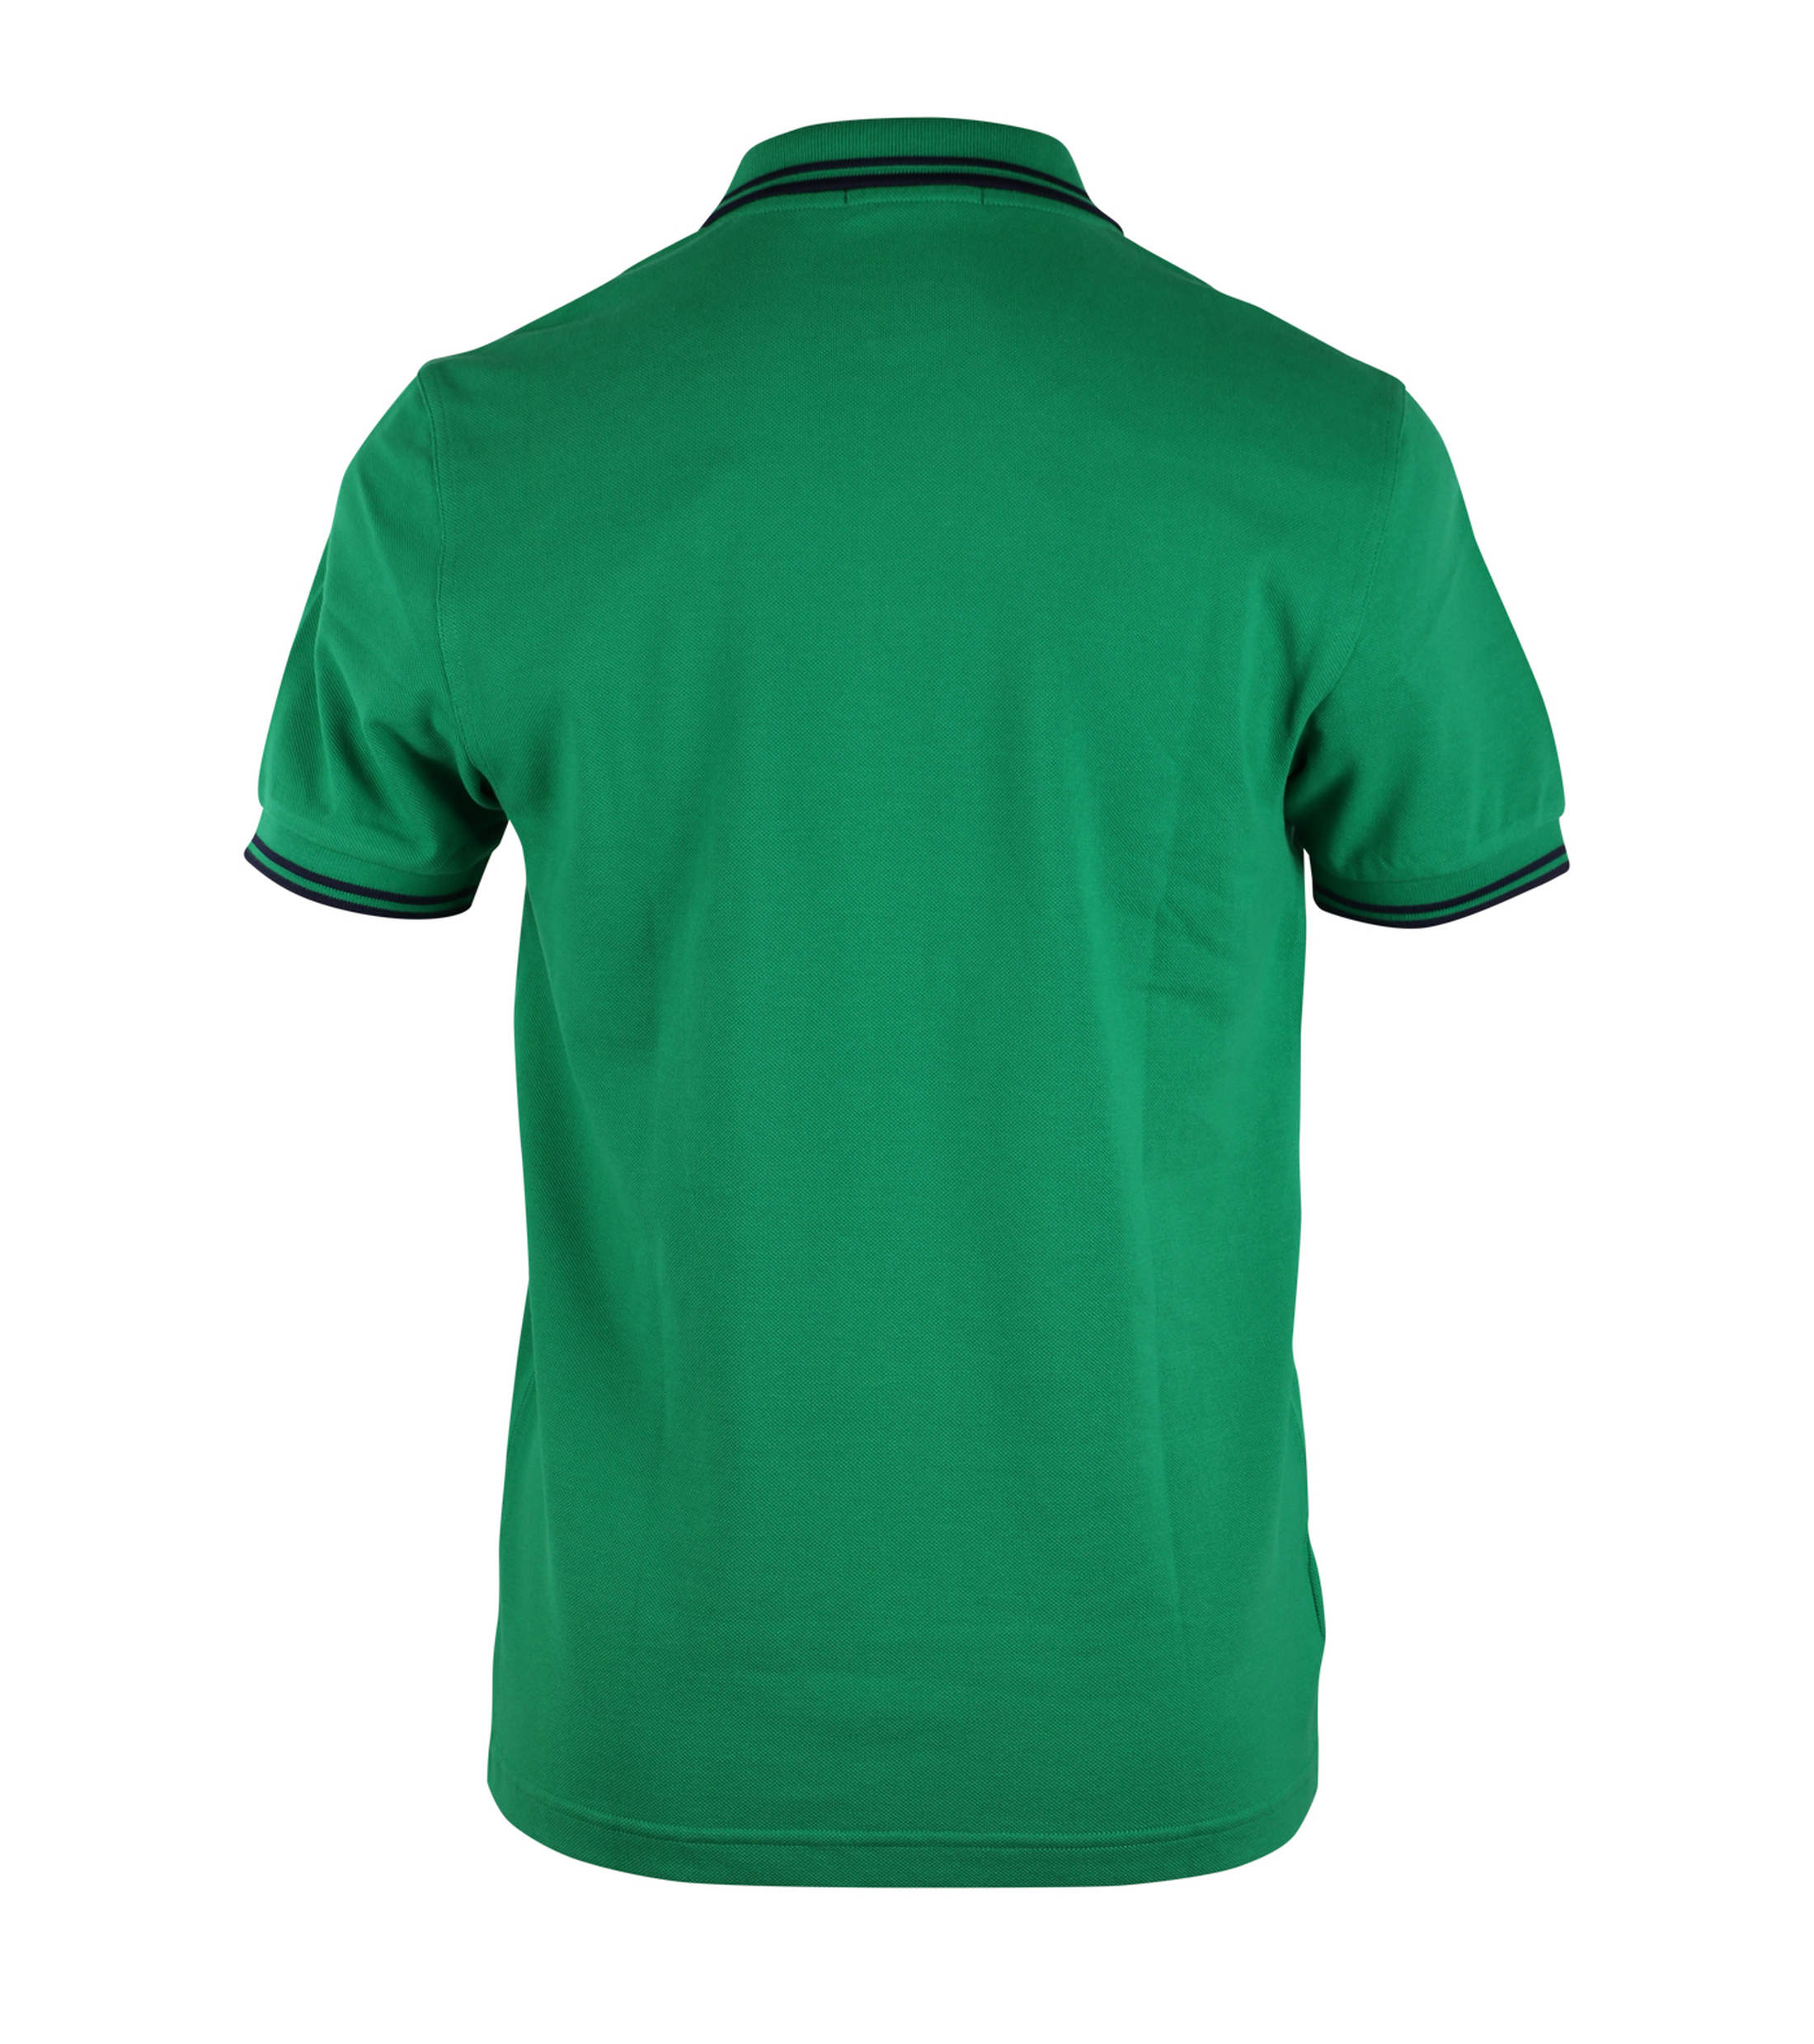 Fred Perry Polo Island Green Slim Fit C92 foto 1